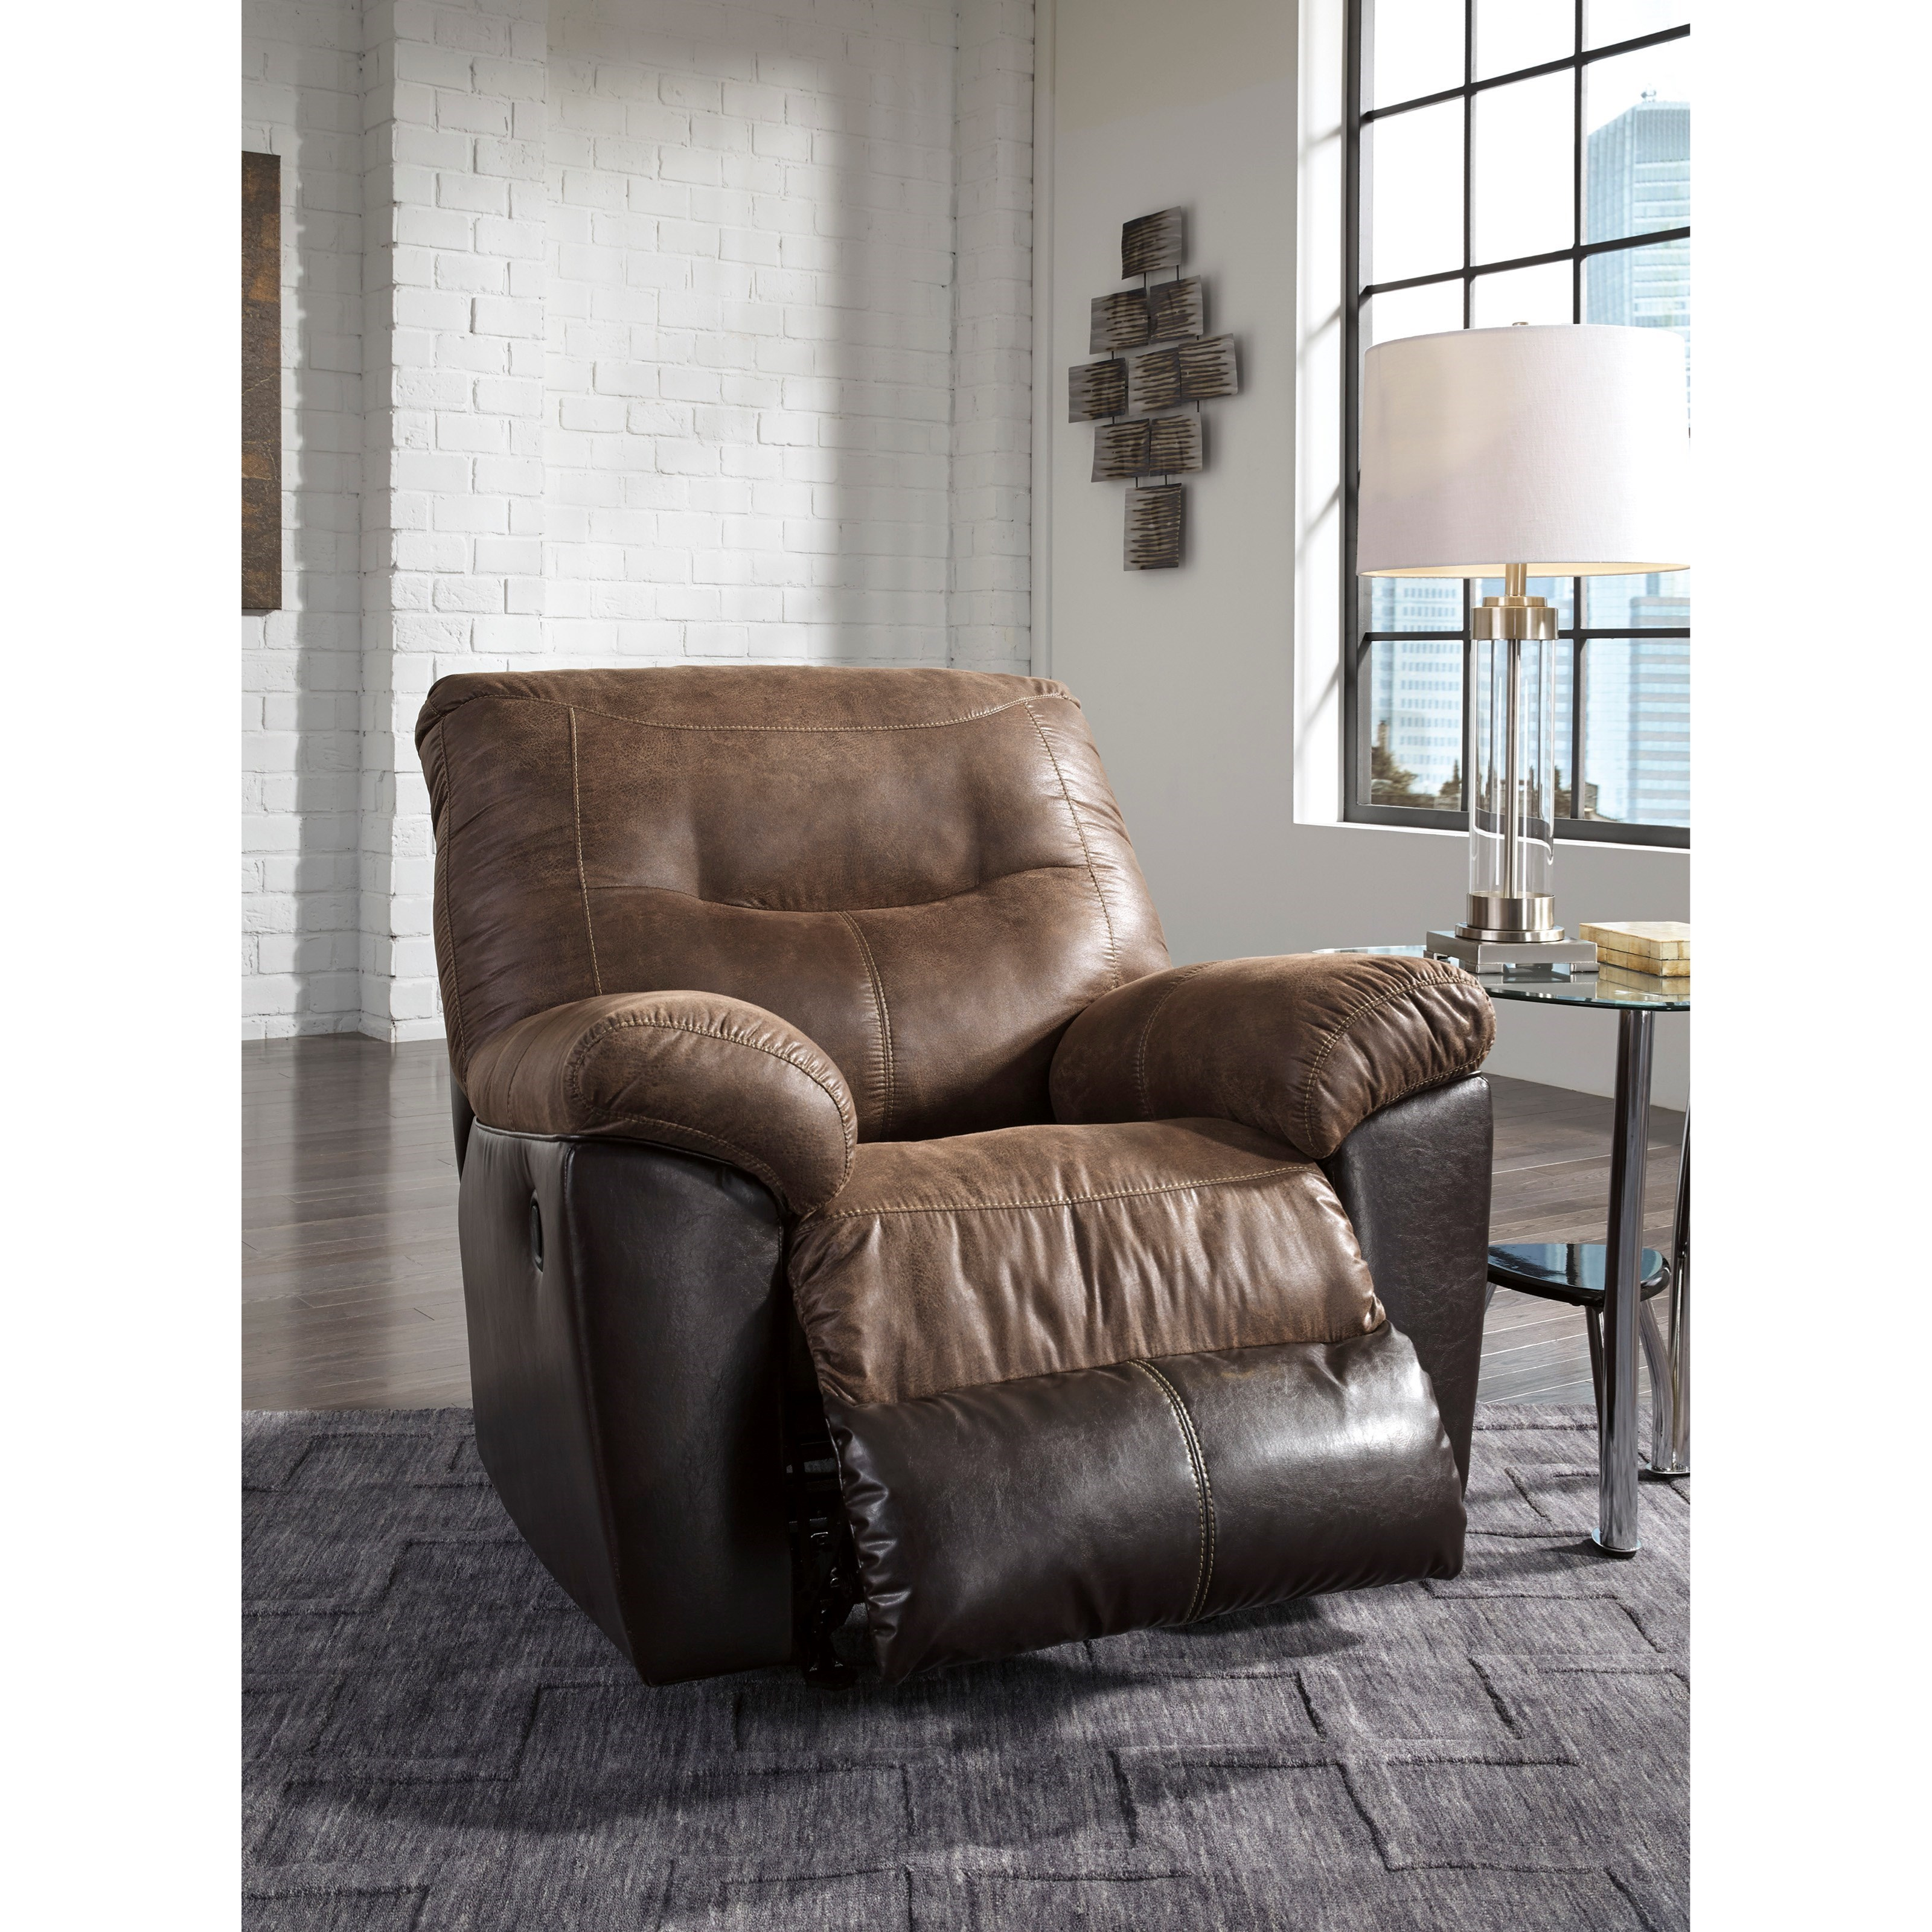 Ashley Furniture Recliners: Two-Tone Faux Leather Rocker Recliner By Signature Design